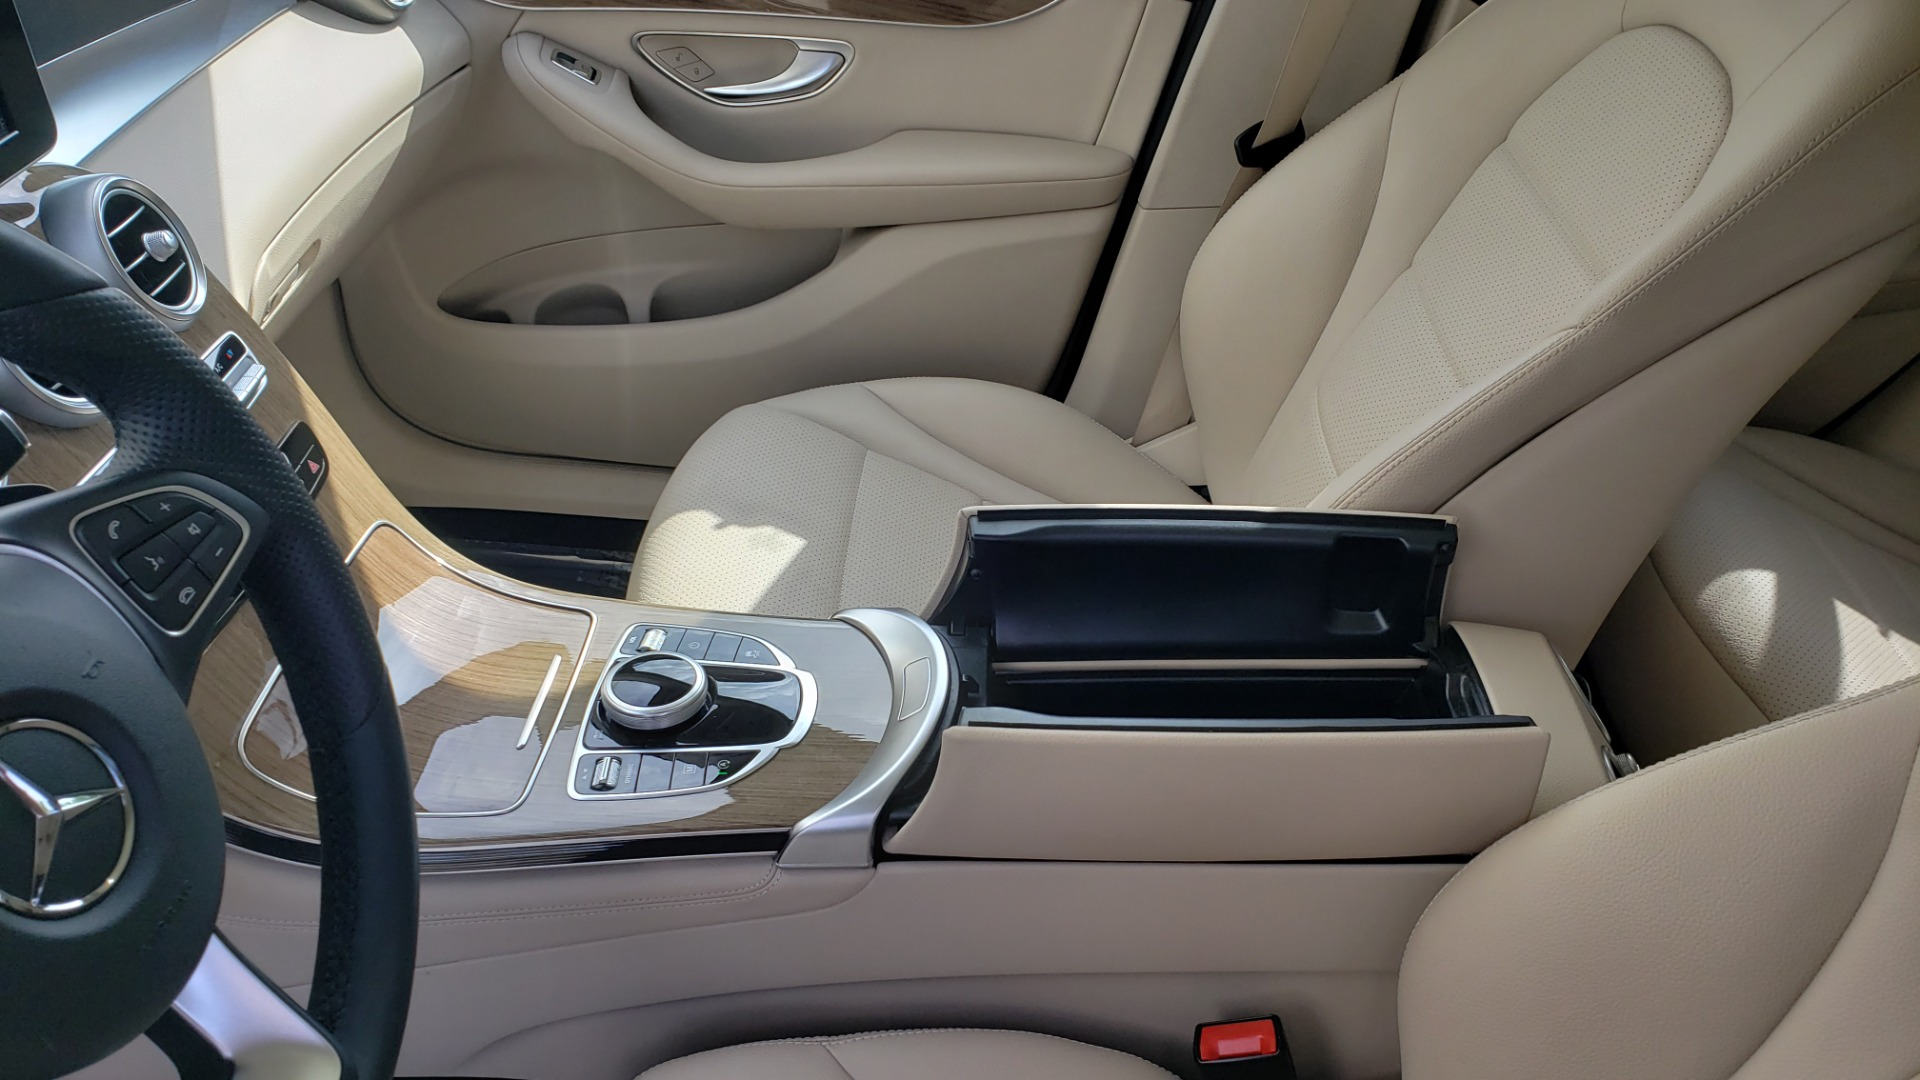 Used 2018 Mercedes-Benz GLC 300 4MATIC / PREM PKG / PANO-ROOF / APPLE / REARVIEW for sale $33,397 at Formula Imports in Charlotte NC 28227 53